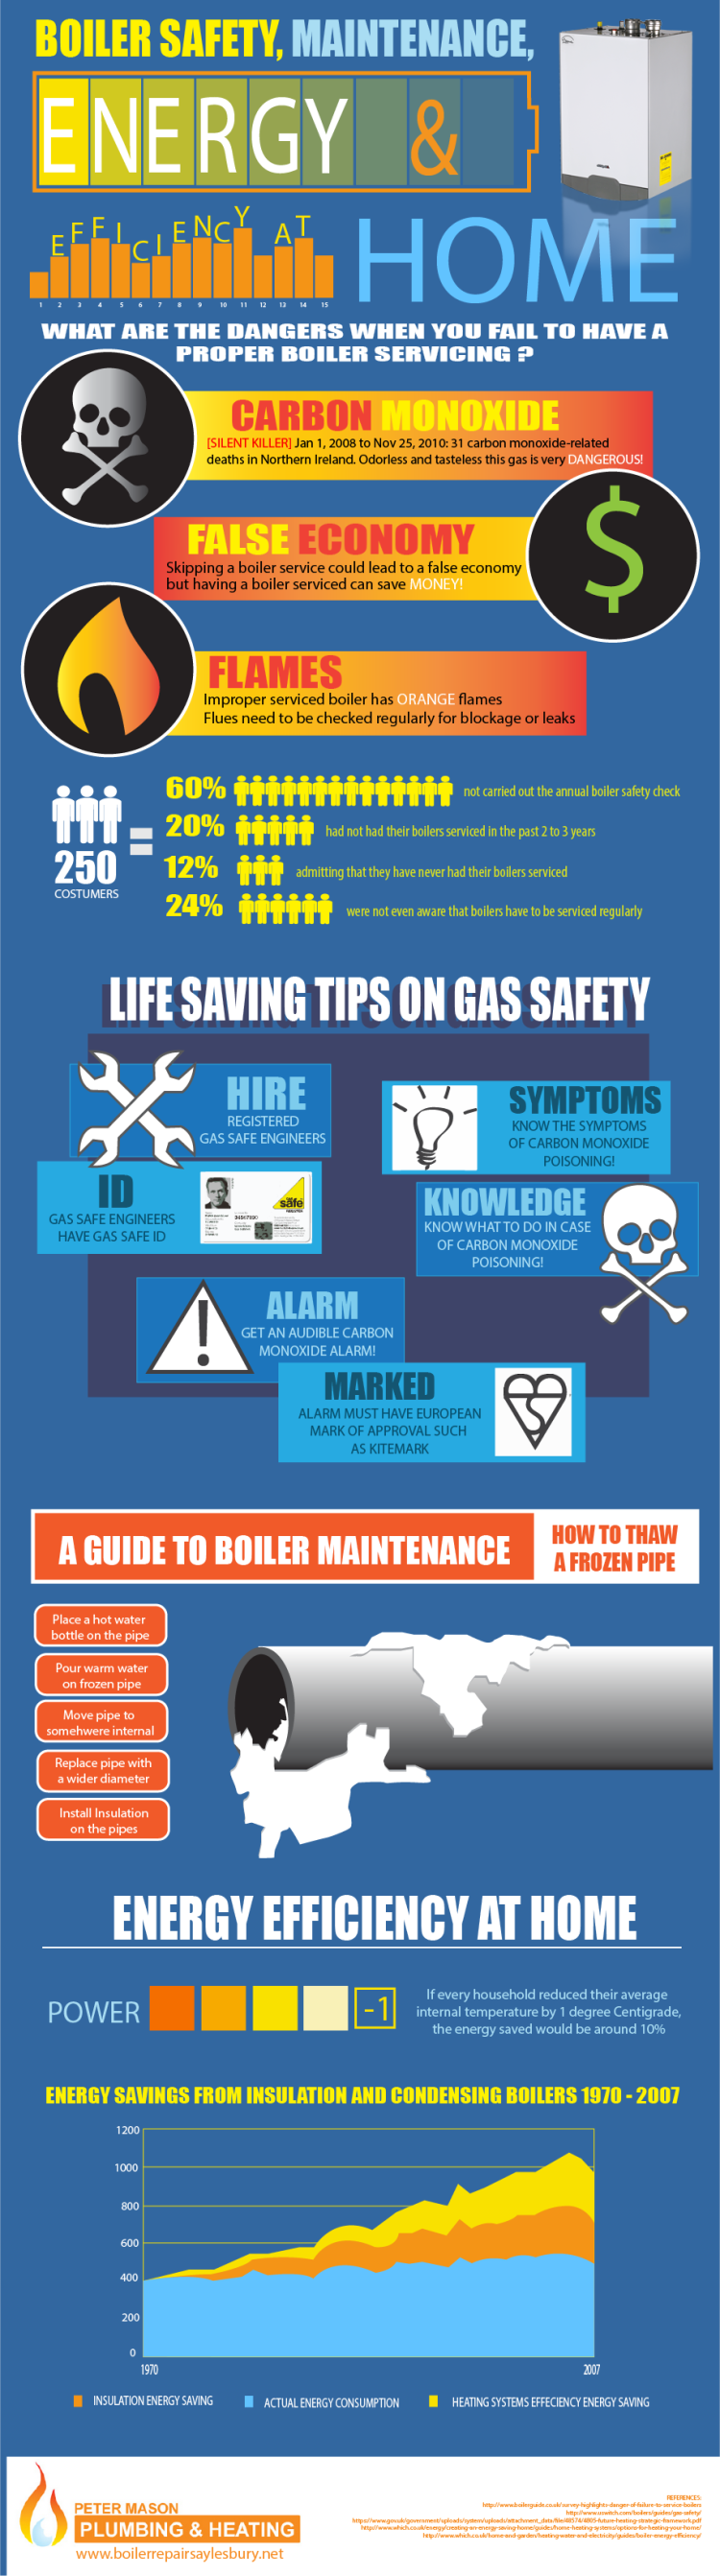 Boiler Safety Tips